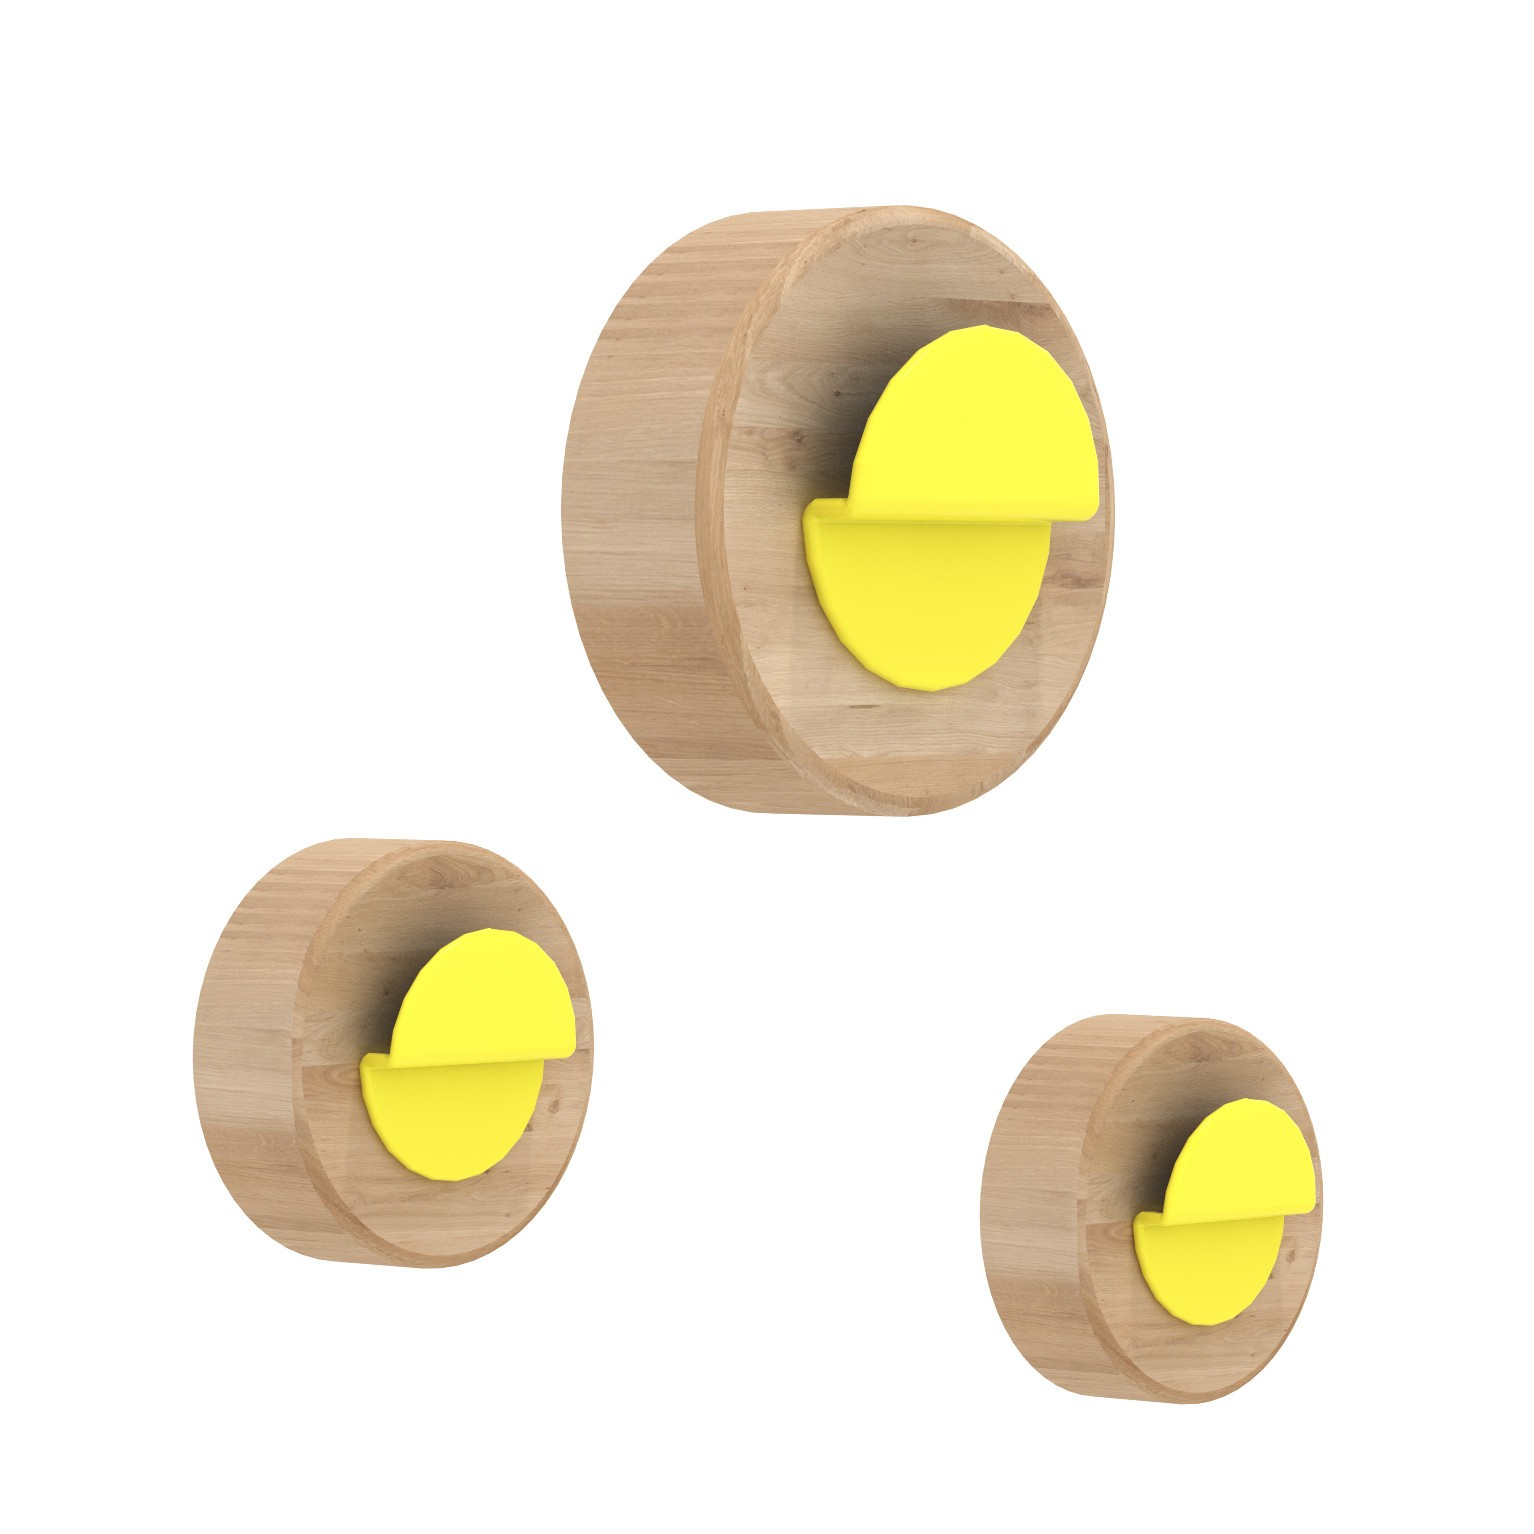 Coat Hanger Agent Solo Set 3 pcs By UNIVERSOPOSITIVO - Natural Oak /  Yellow color